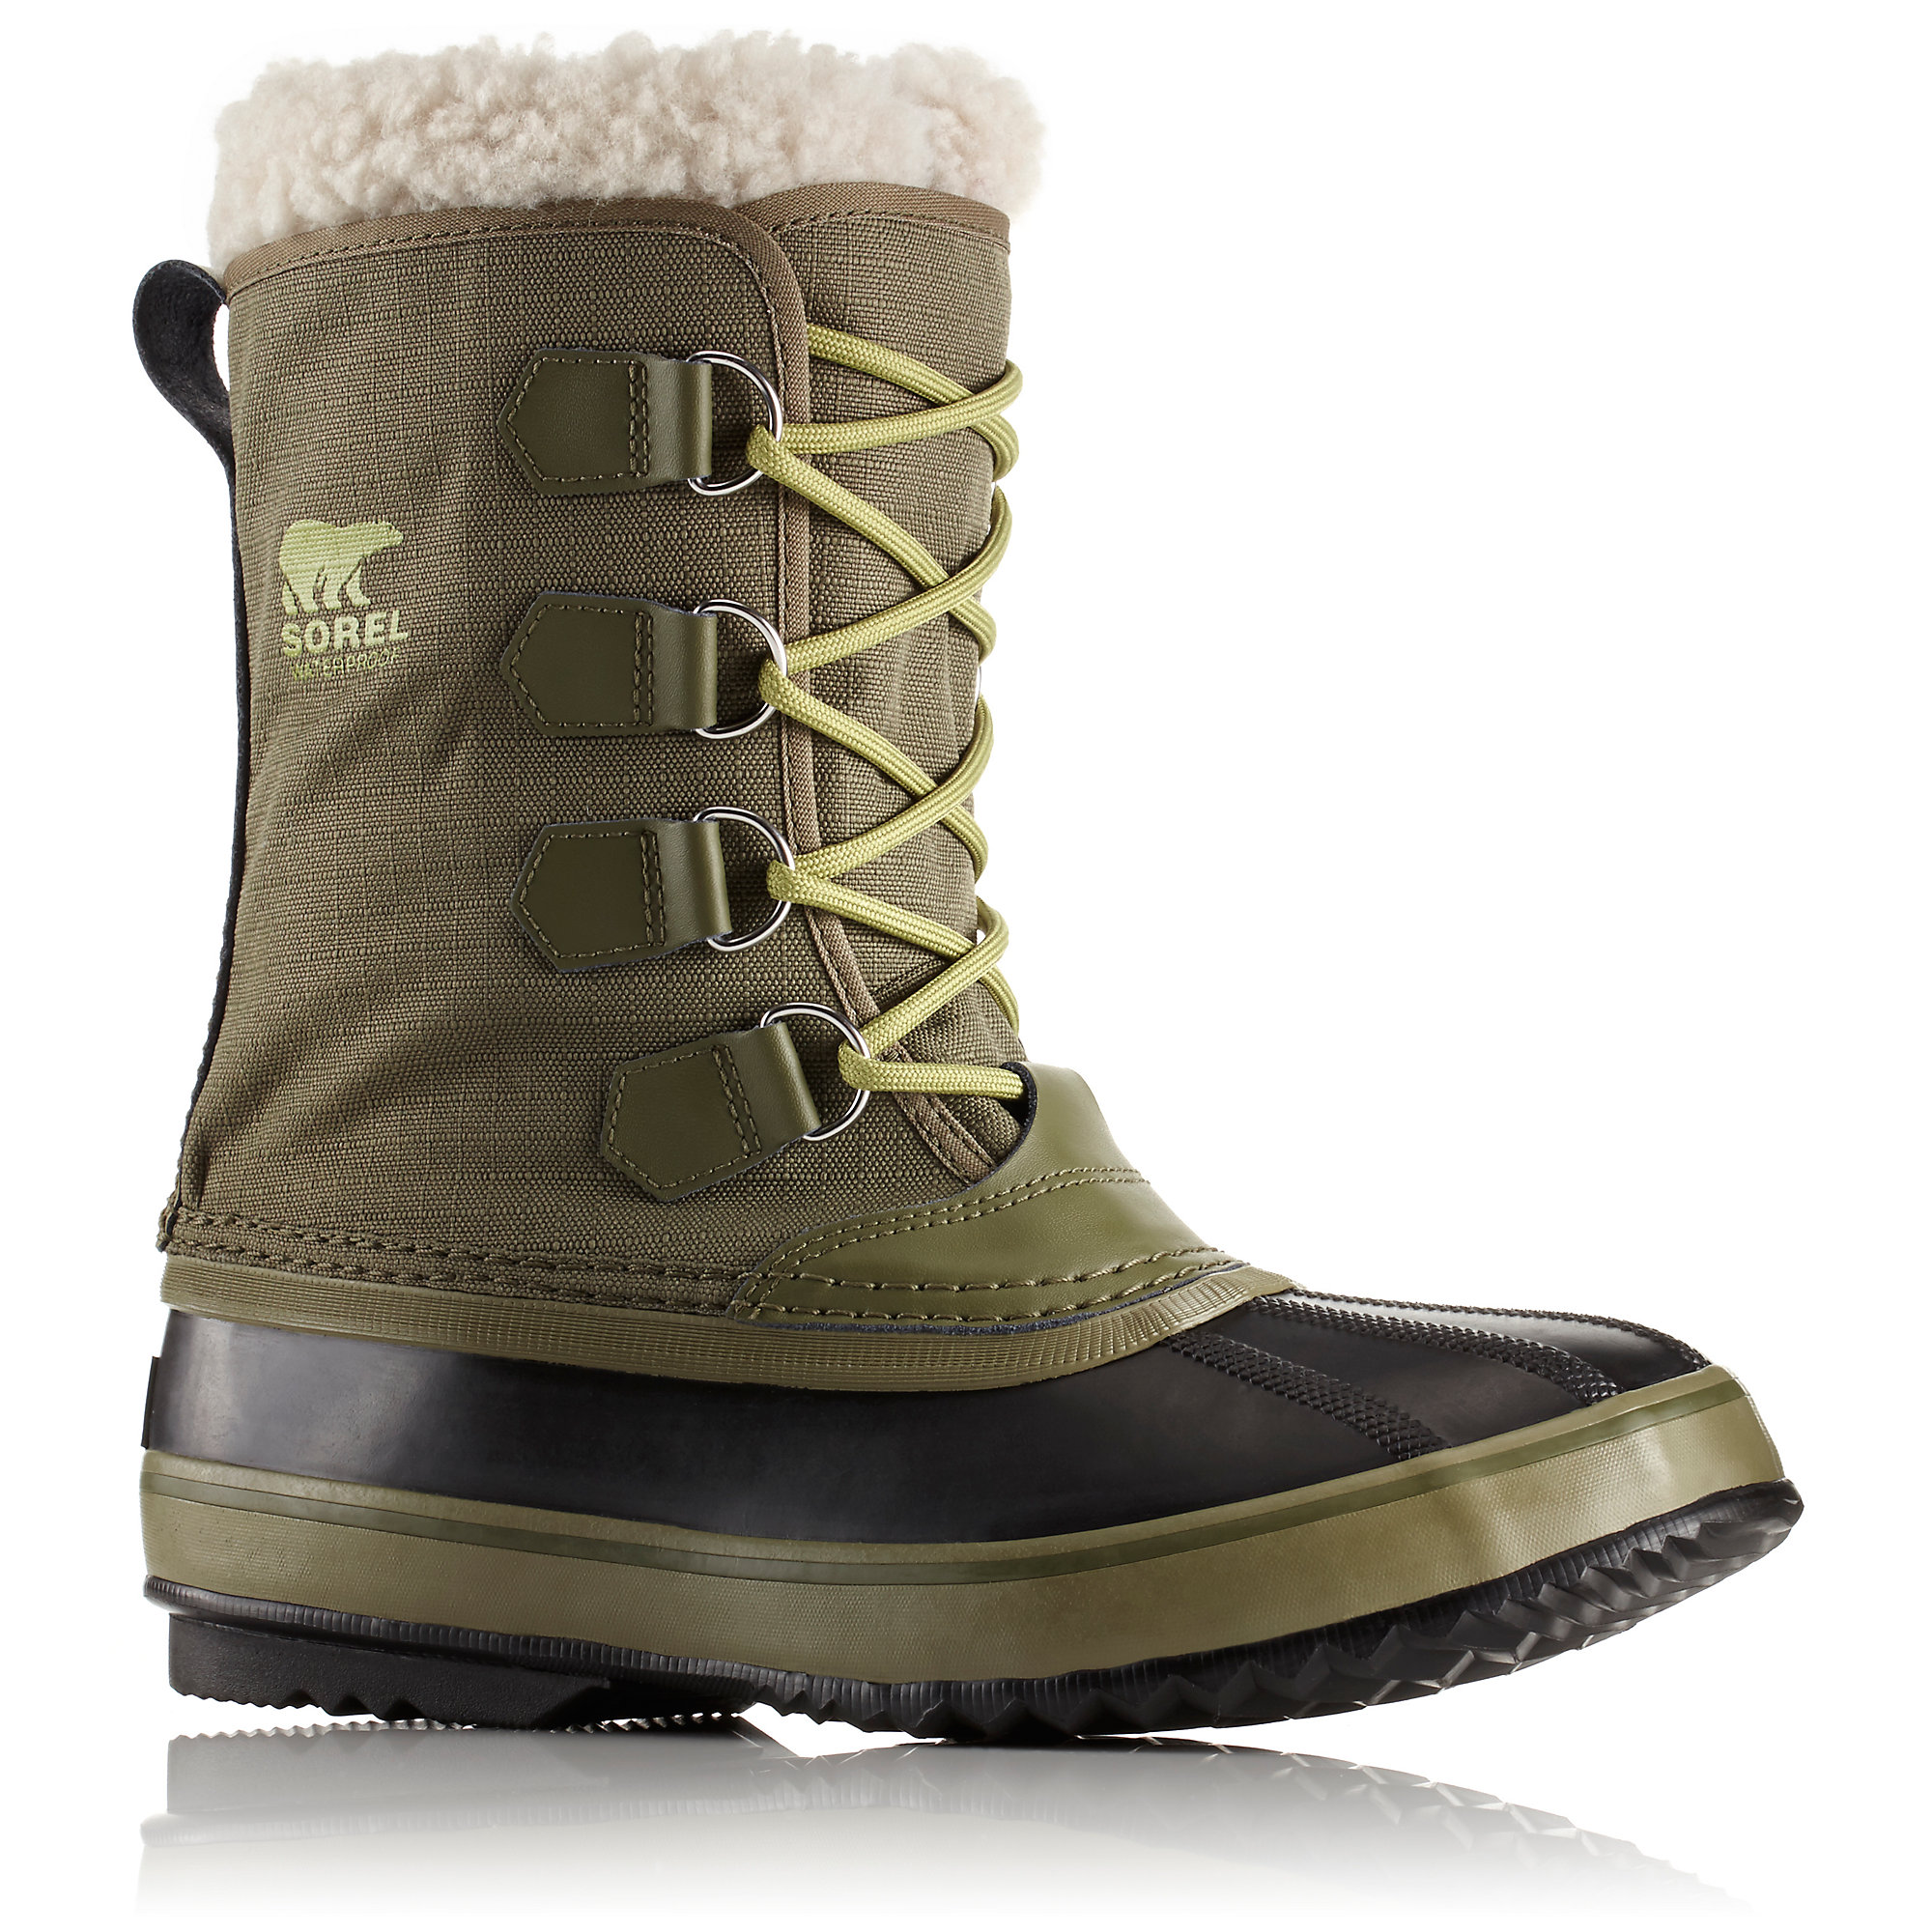 Sorel 1964 PAC  NYLON  383  7.5-